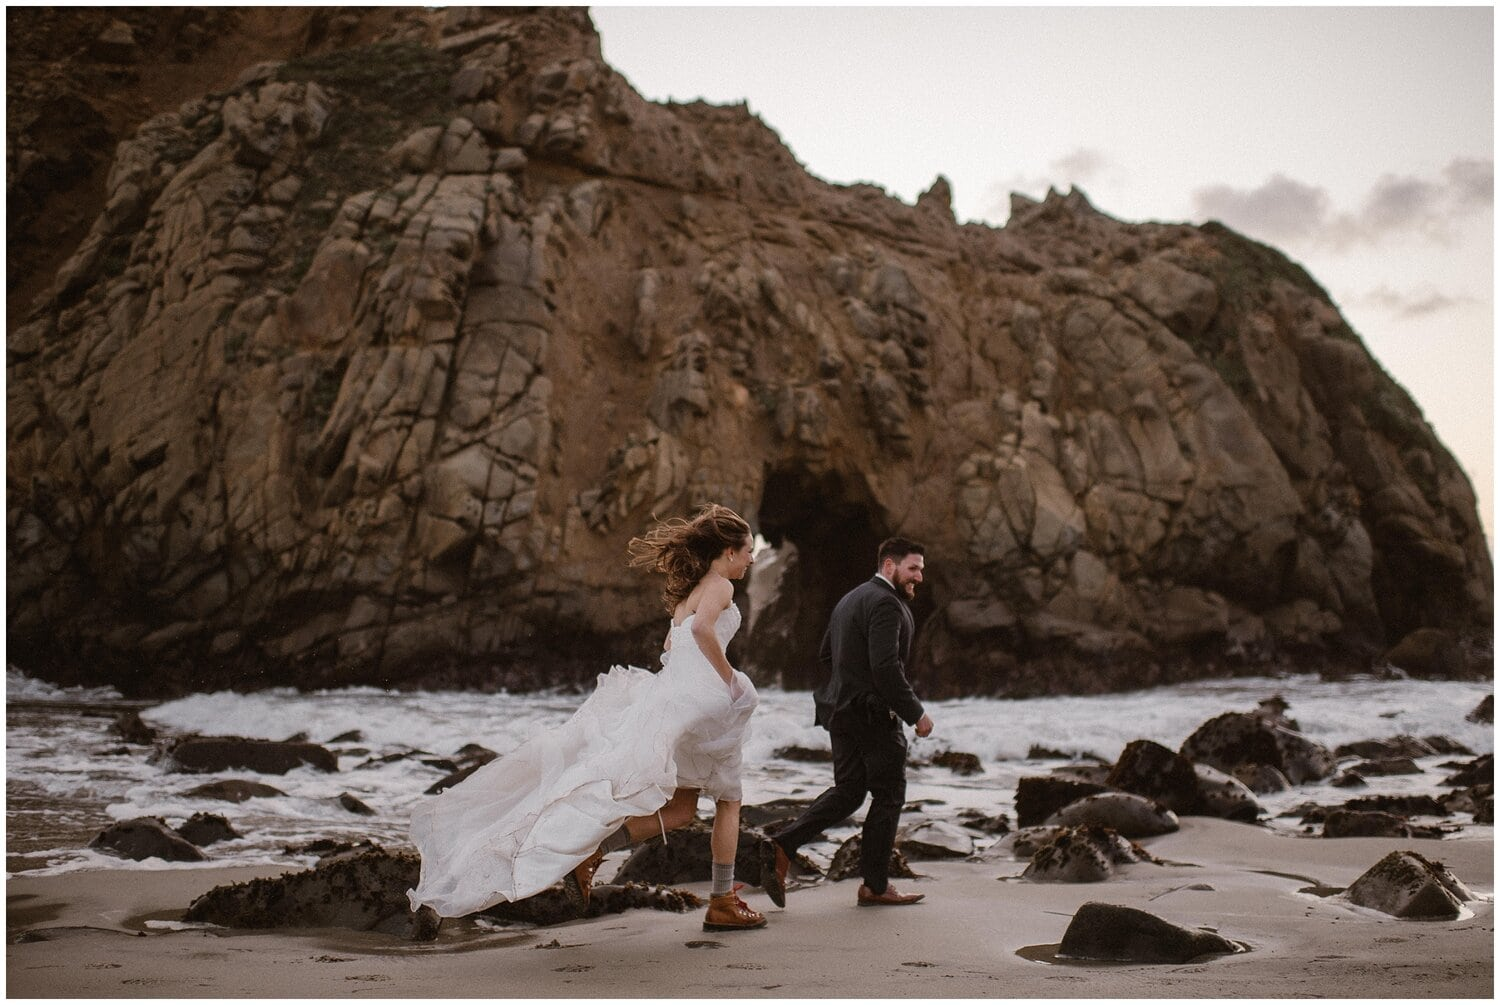 A bride in a white, flowy elopement dress runs across the beach with her groom.